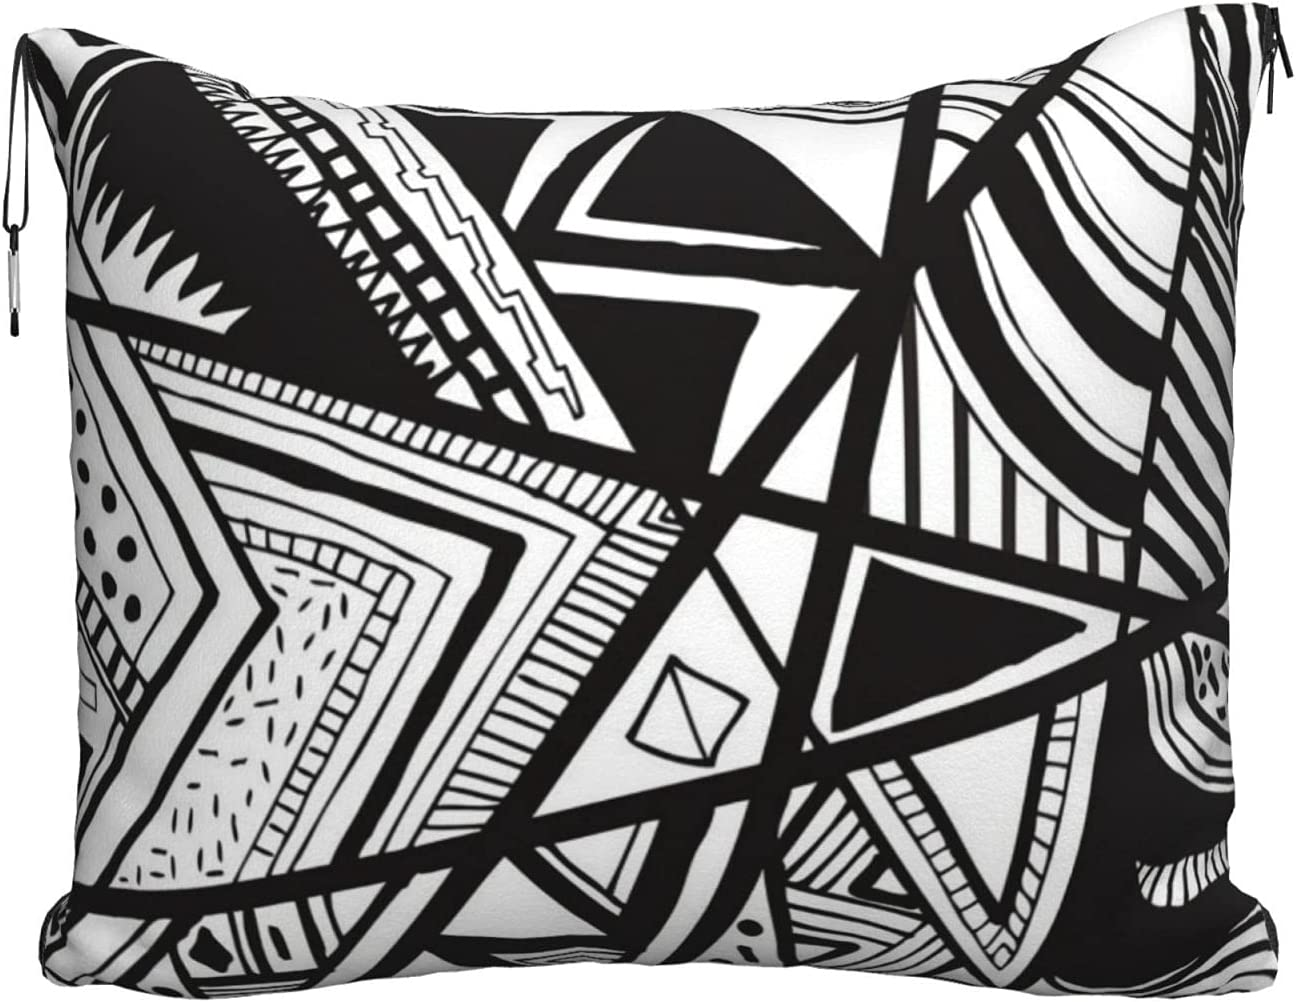 Quantity limited Black Superior and White Lines Shapes Pillow Blanket Travel Blan Airplane